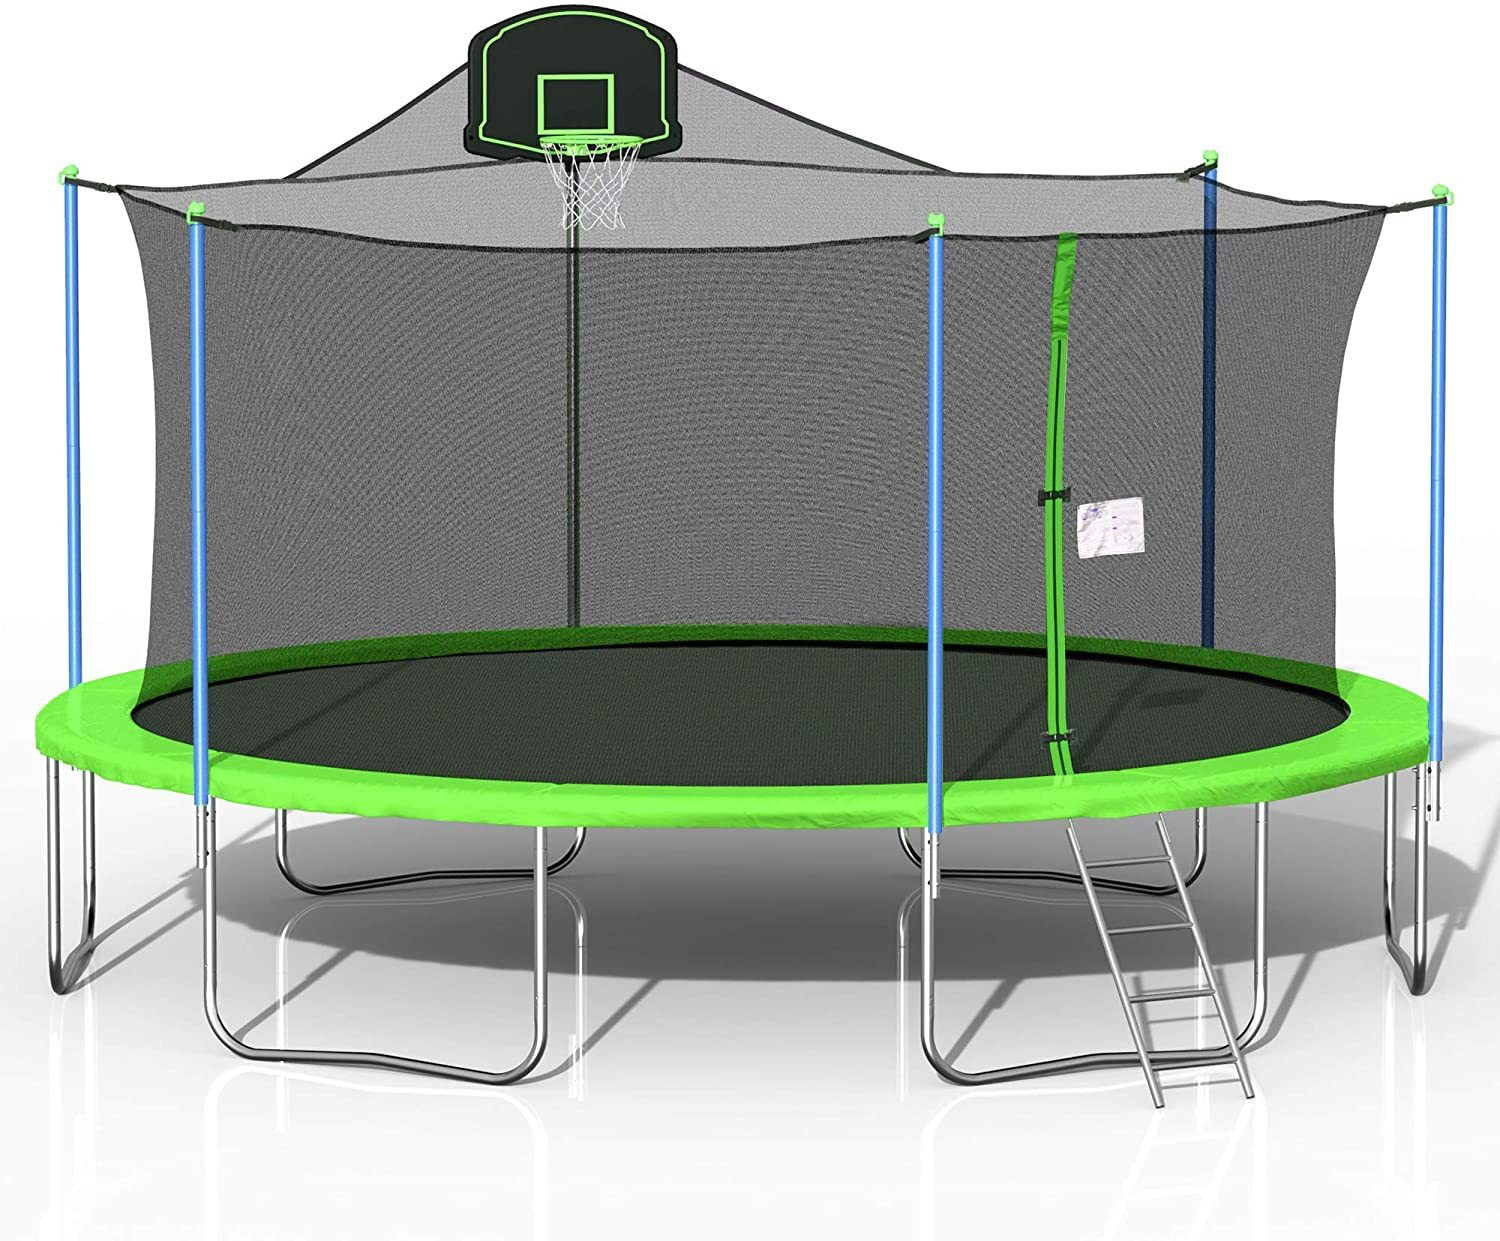 Round 16FT Trampoline Jumping Table with Safety Enclosure Net Spring Pad Combo Bounding Bed Trampoline Fitness Equipment, Outdoor Indoor Trampoline with Basketball Hoop Ladder Safety and Pads Top Safe